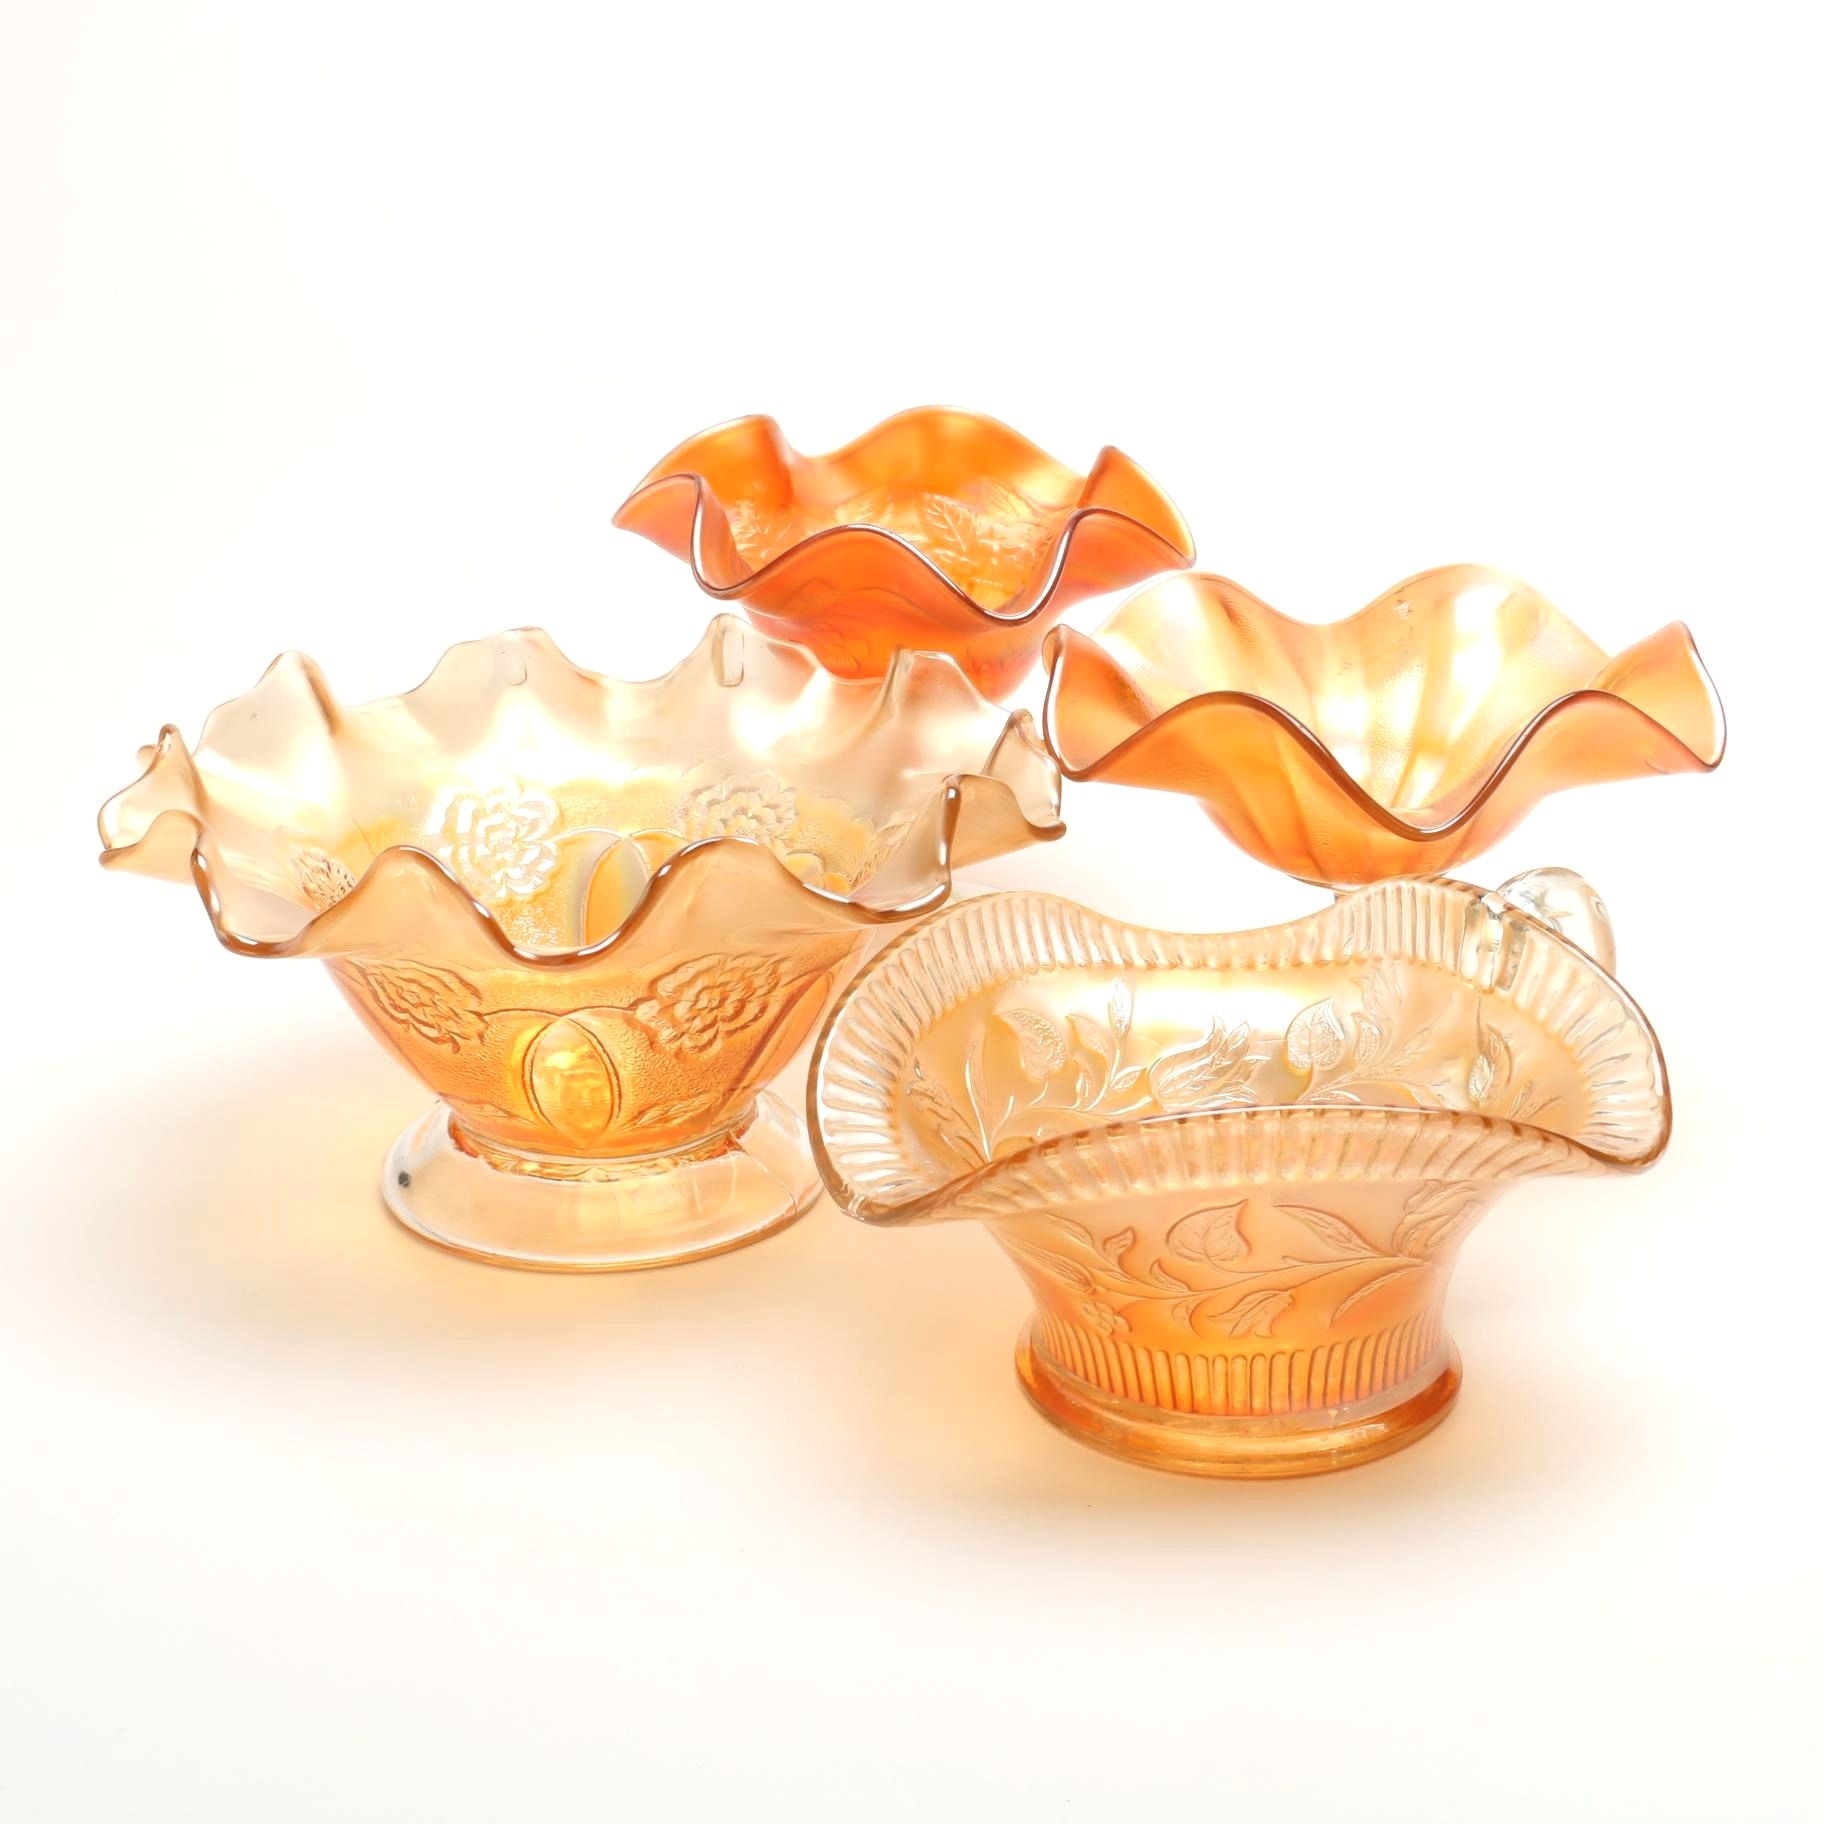 Carnival Glass Fruit Bowl, Two Compotes and Handled Nut Dish